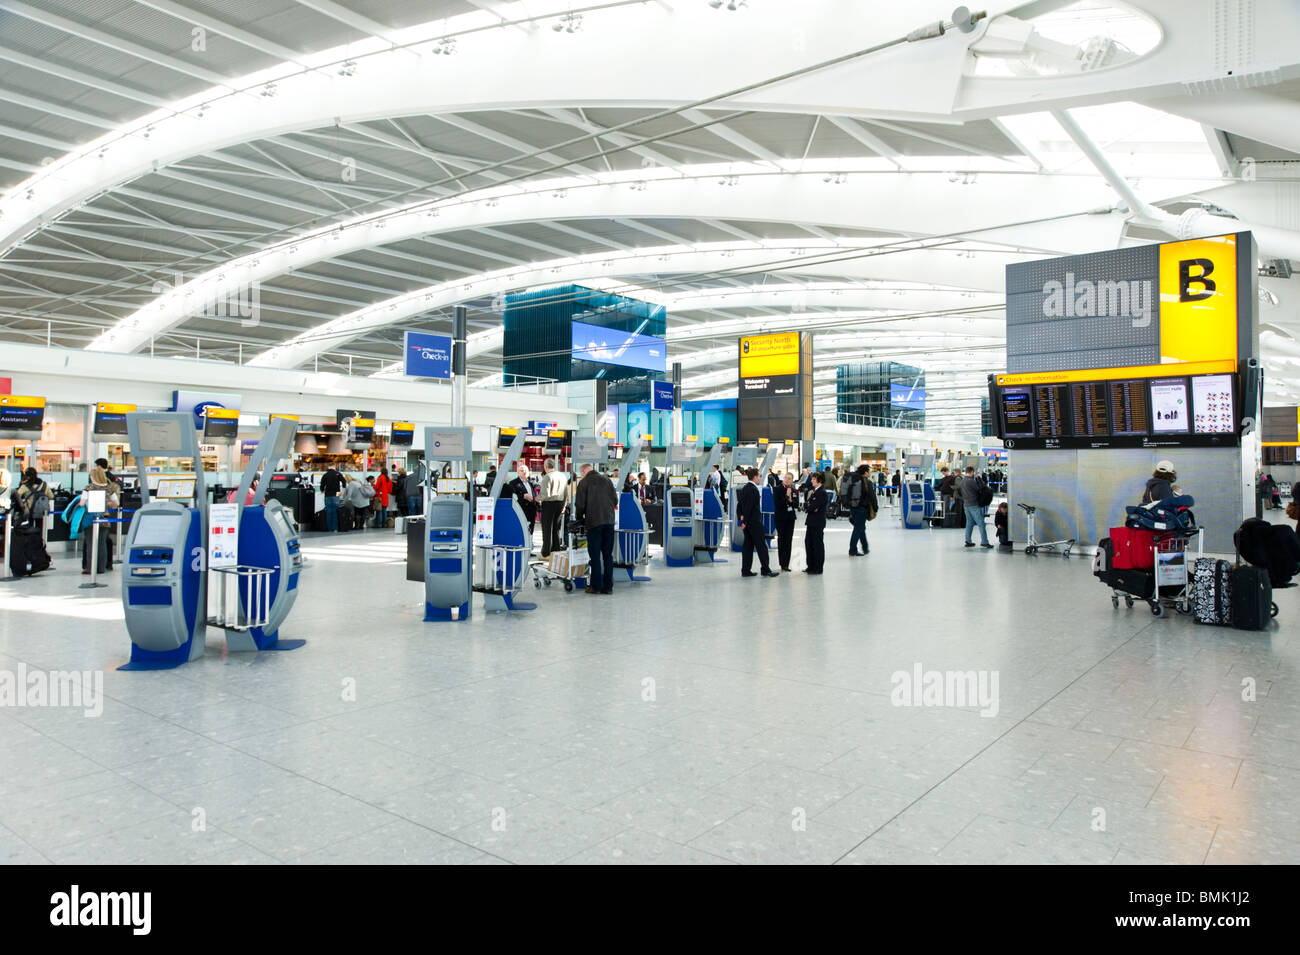 Heathrow Airport Terminal 5, London, England, UK - Stock Image